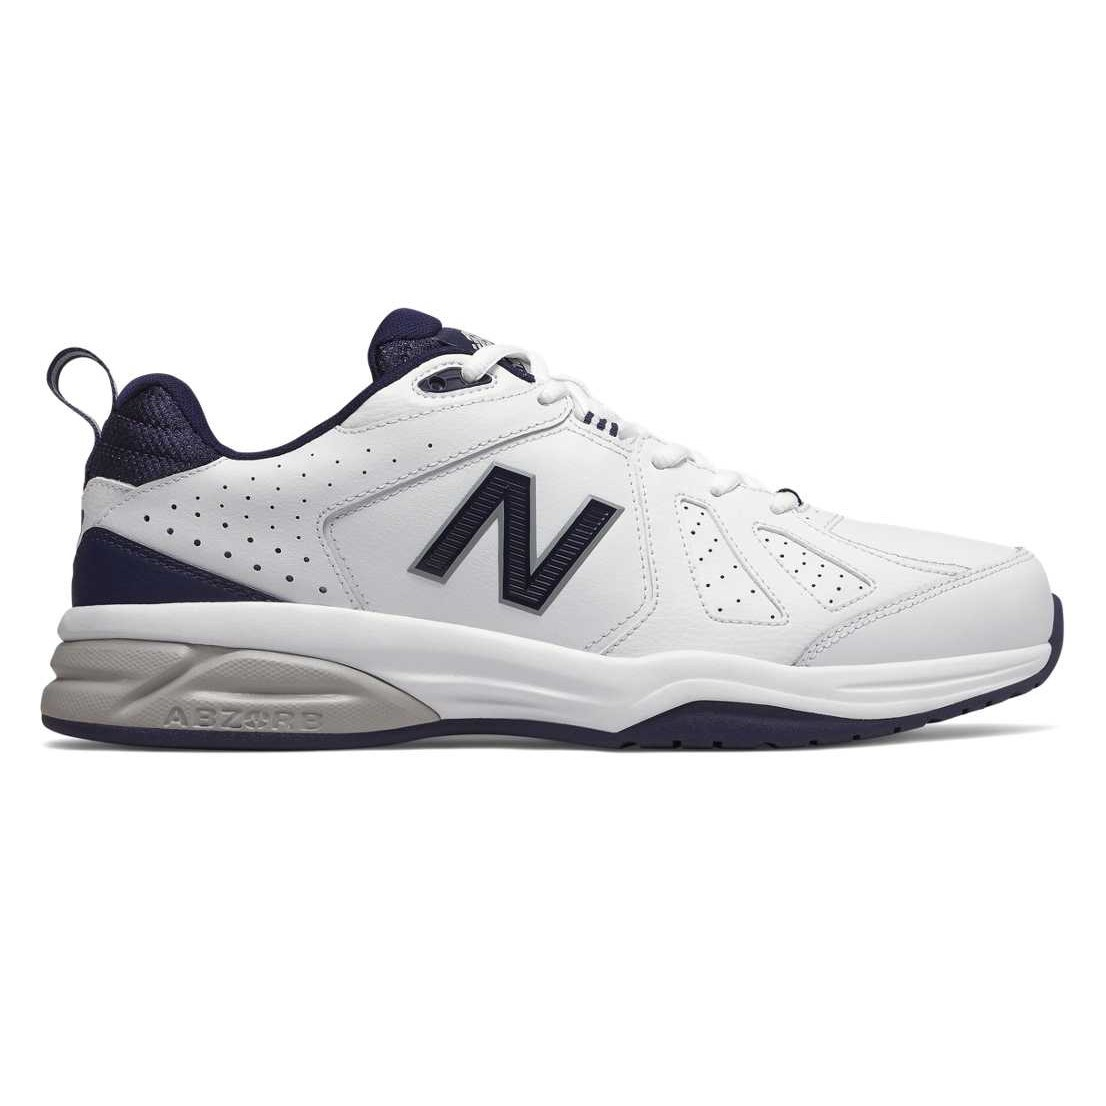 competitive price 3ca82 20e57 New Balance 624v5 - Mens Cross Training Shoes - White Navy